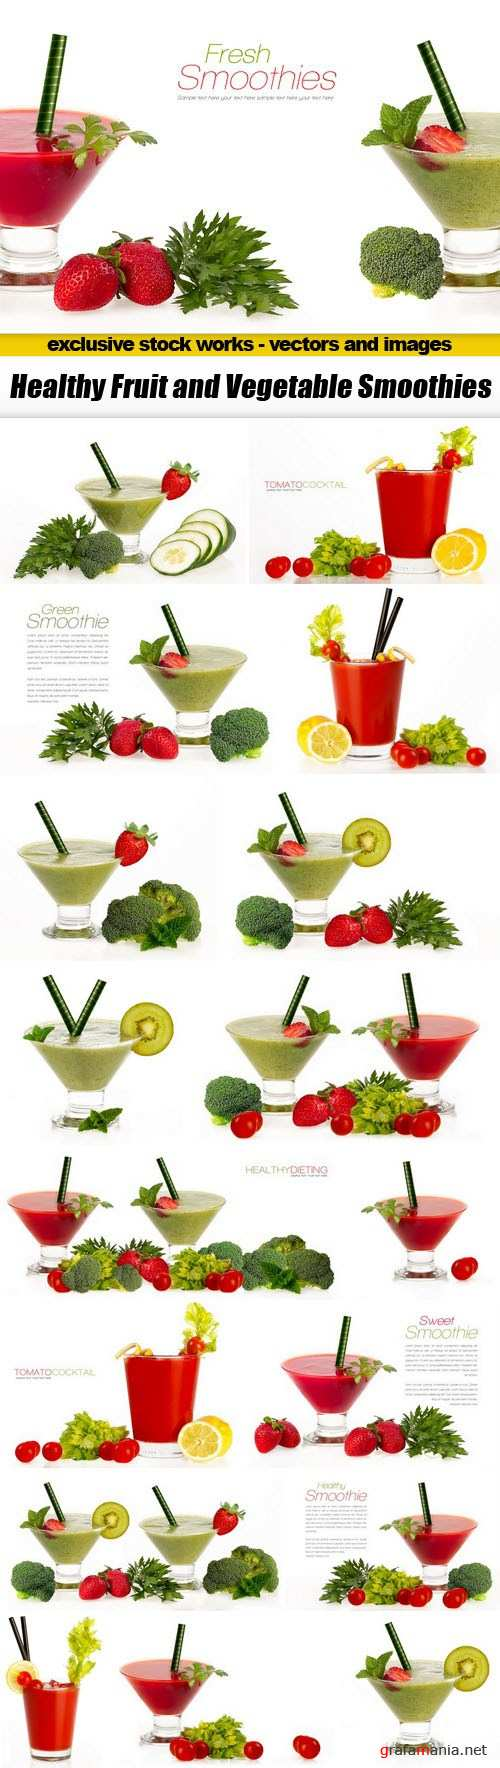 Healthy Fruit and Vegetable Smoothies - 18xUHQ JPEG